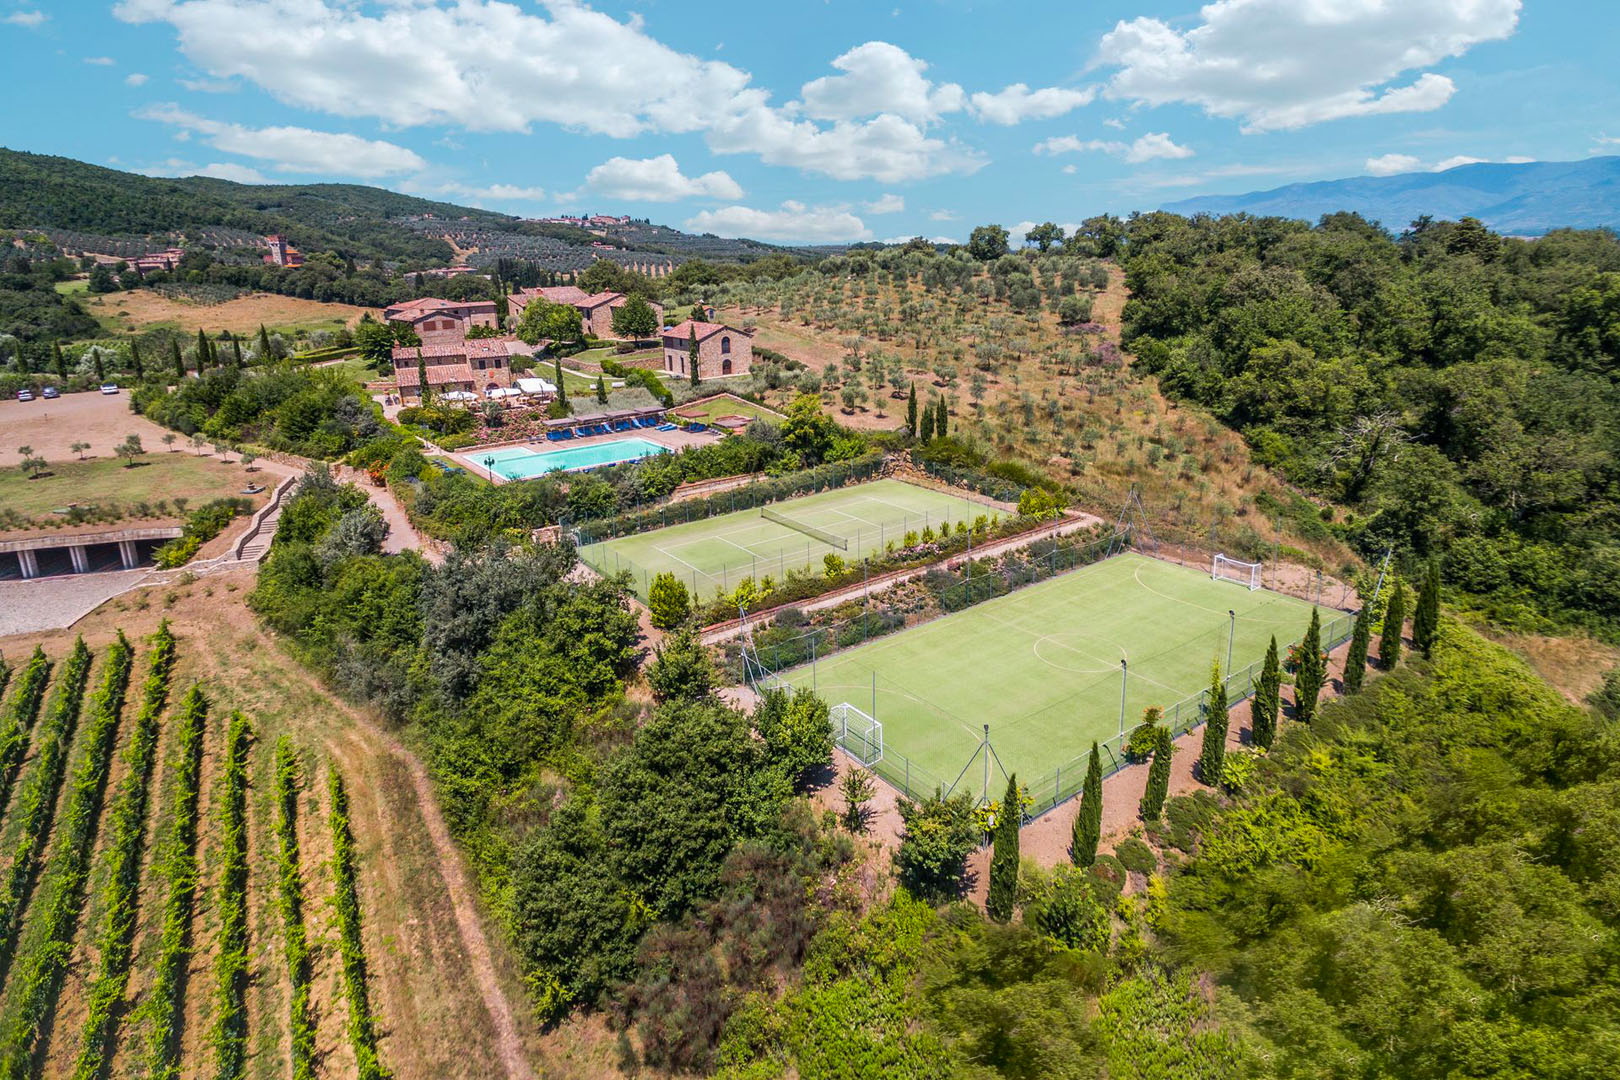 EXCLUSIVE WINE RESORT FOR SALE IN AREZZO, TUSCANY